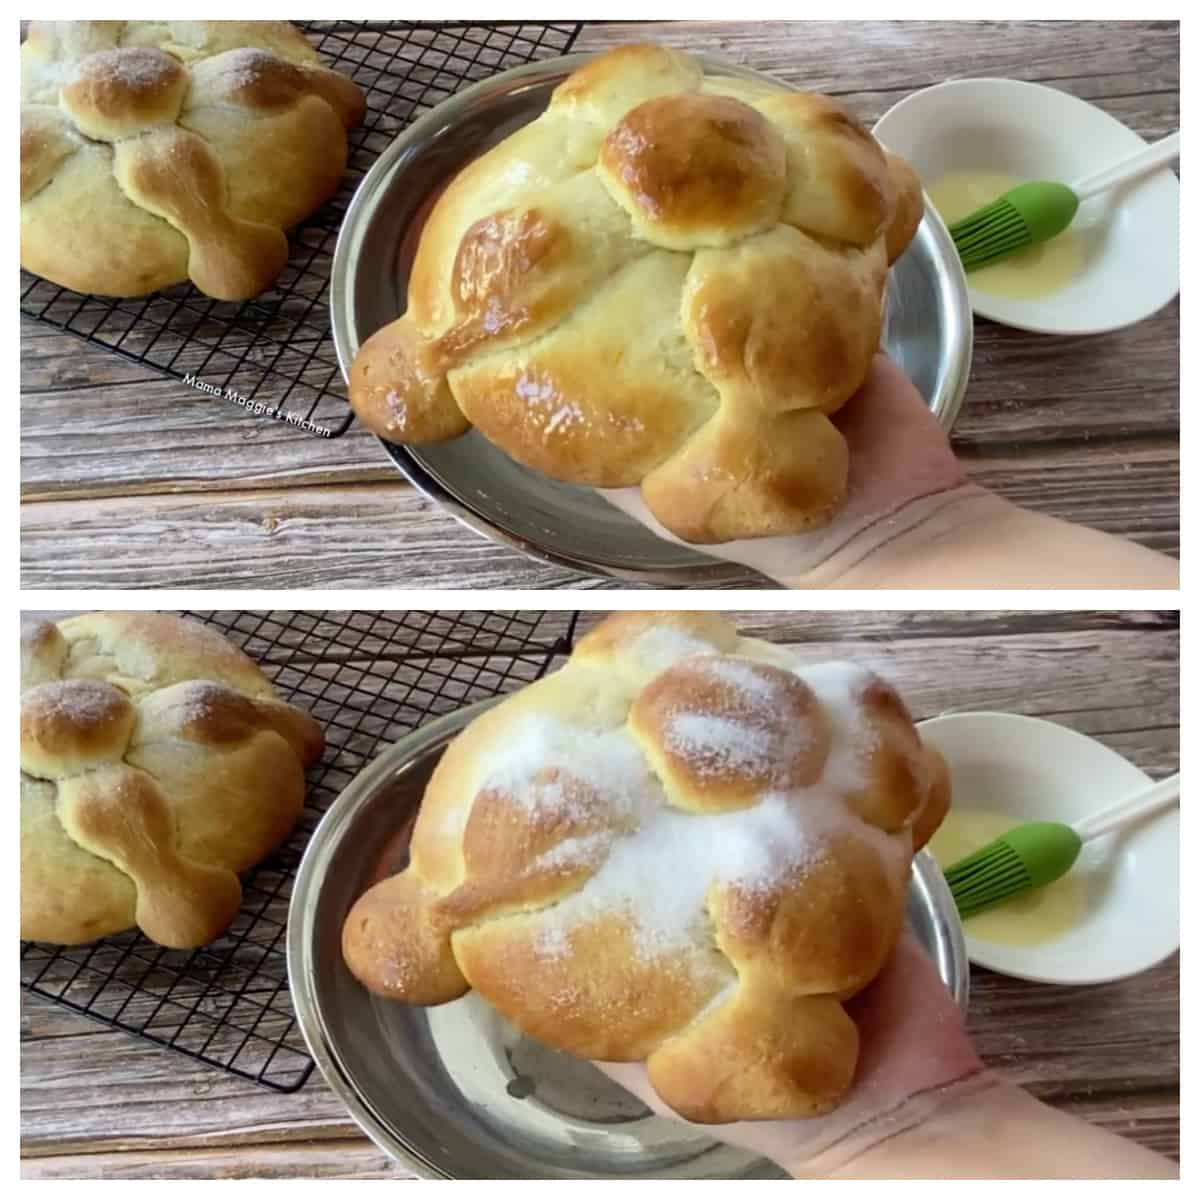 A collage showing how to add the butter to the pan de muerto.